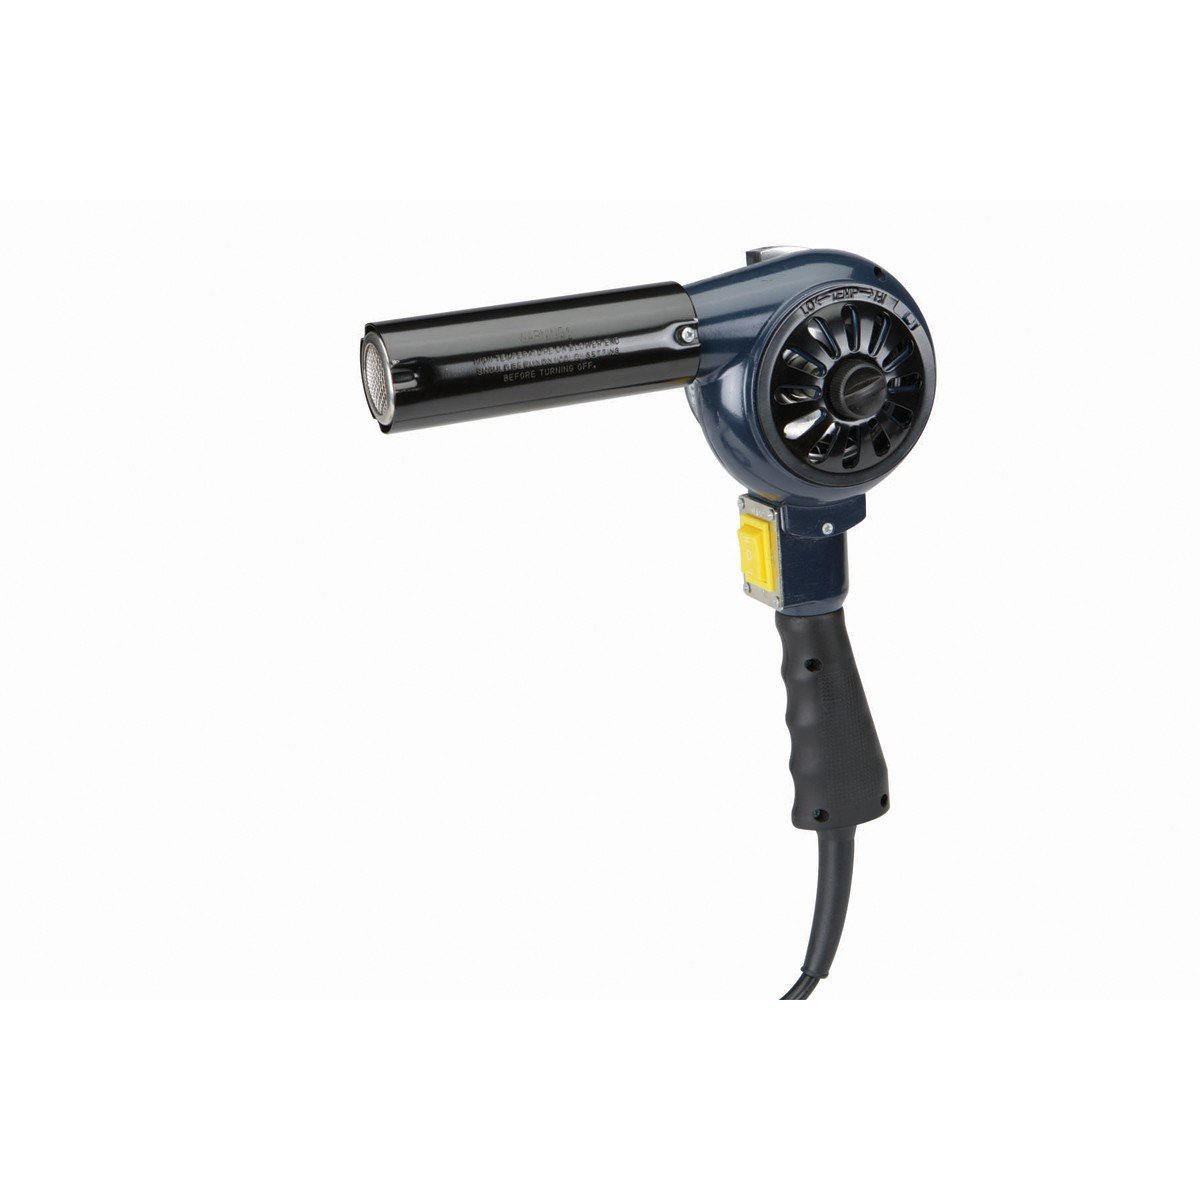 TruePower 689 1600-watt Industrial Heat Gun